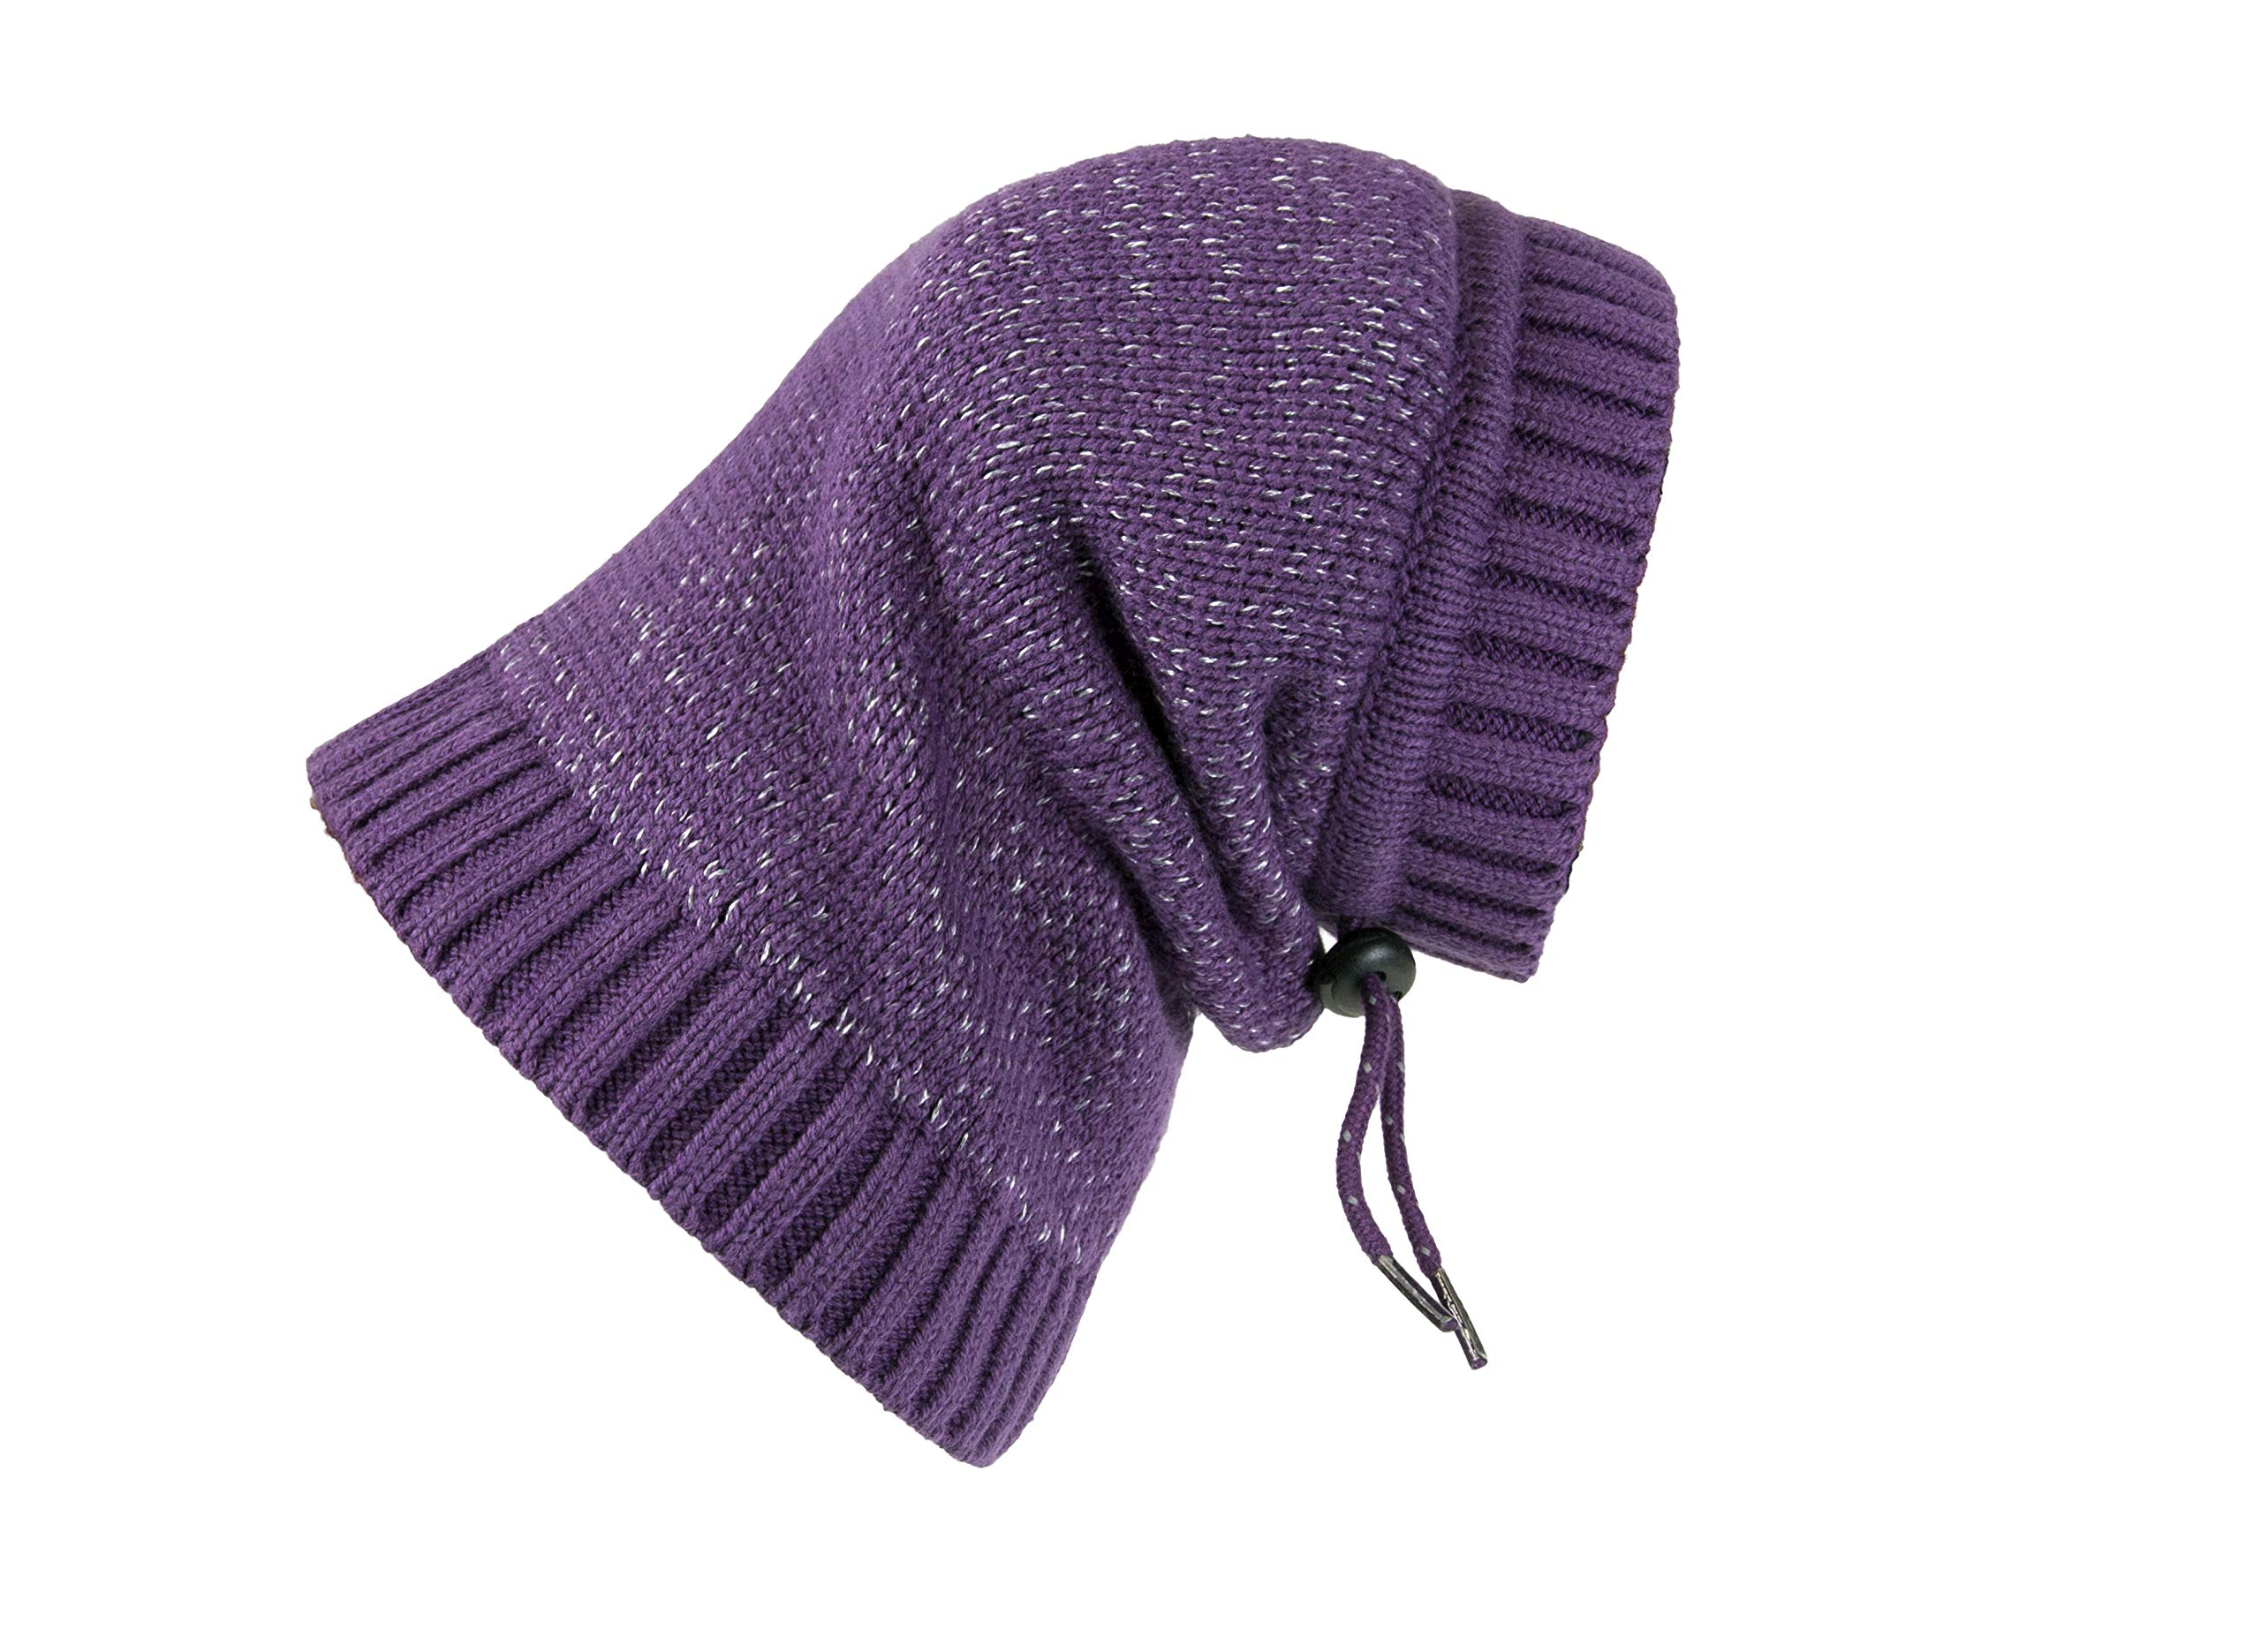 RC Pet Products 67003010 Polaris Snood Dog Neck Warmer, Plum Purple, Small by RC Pet Products